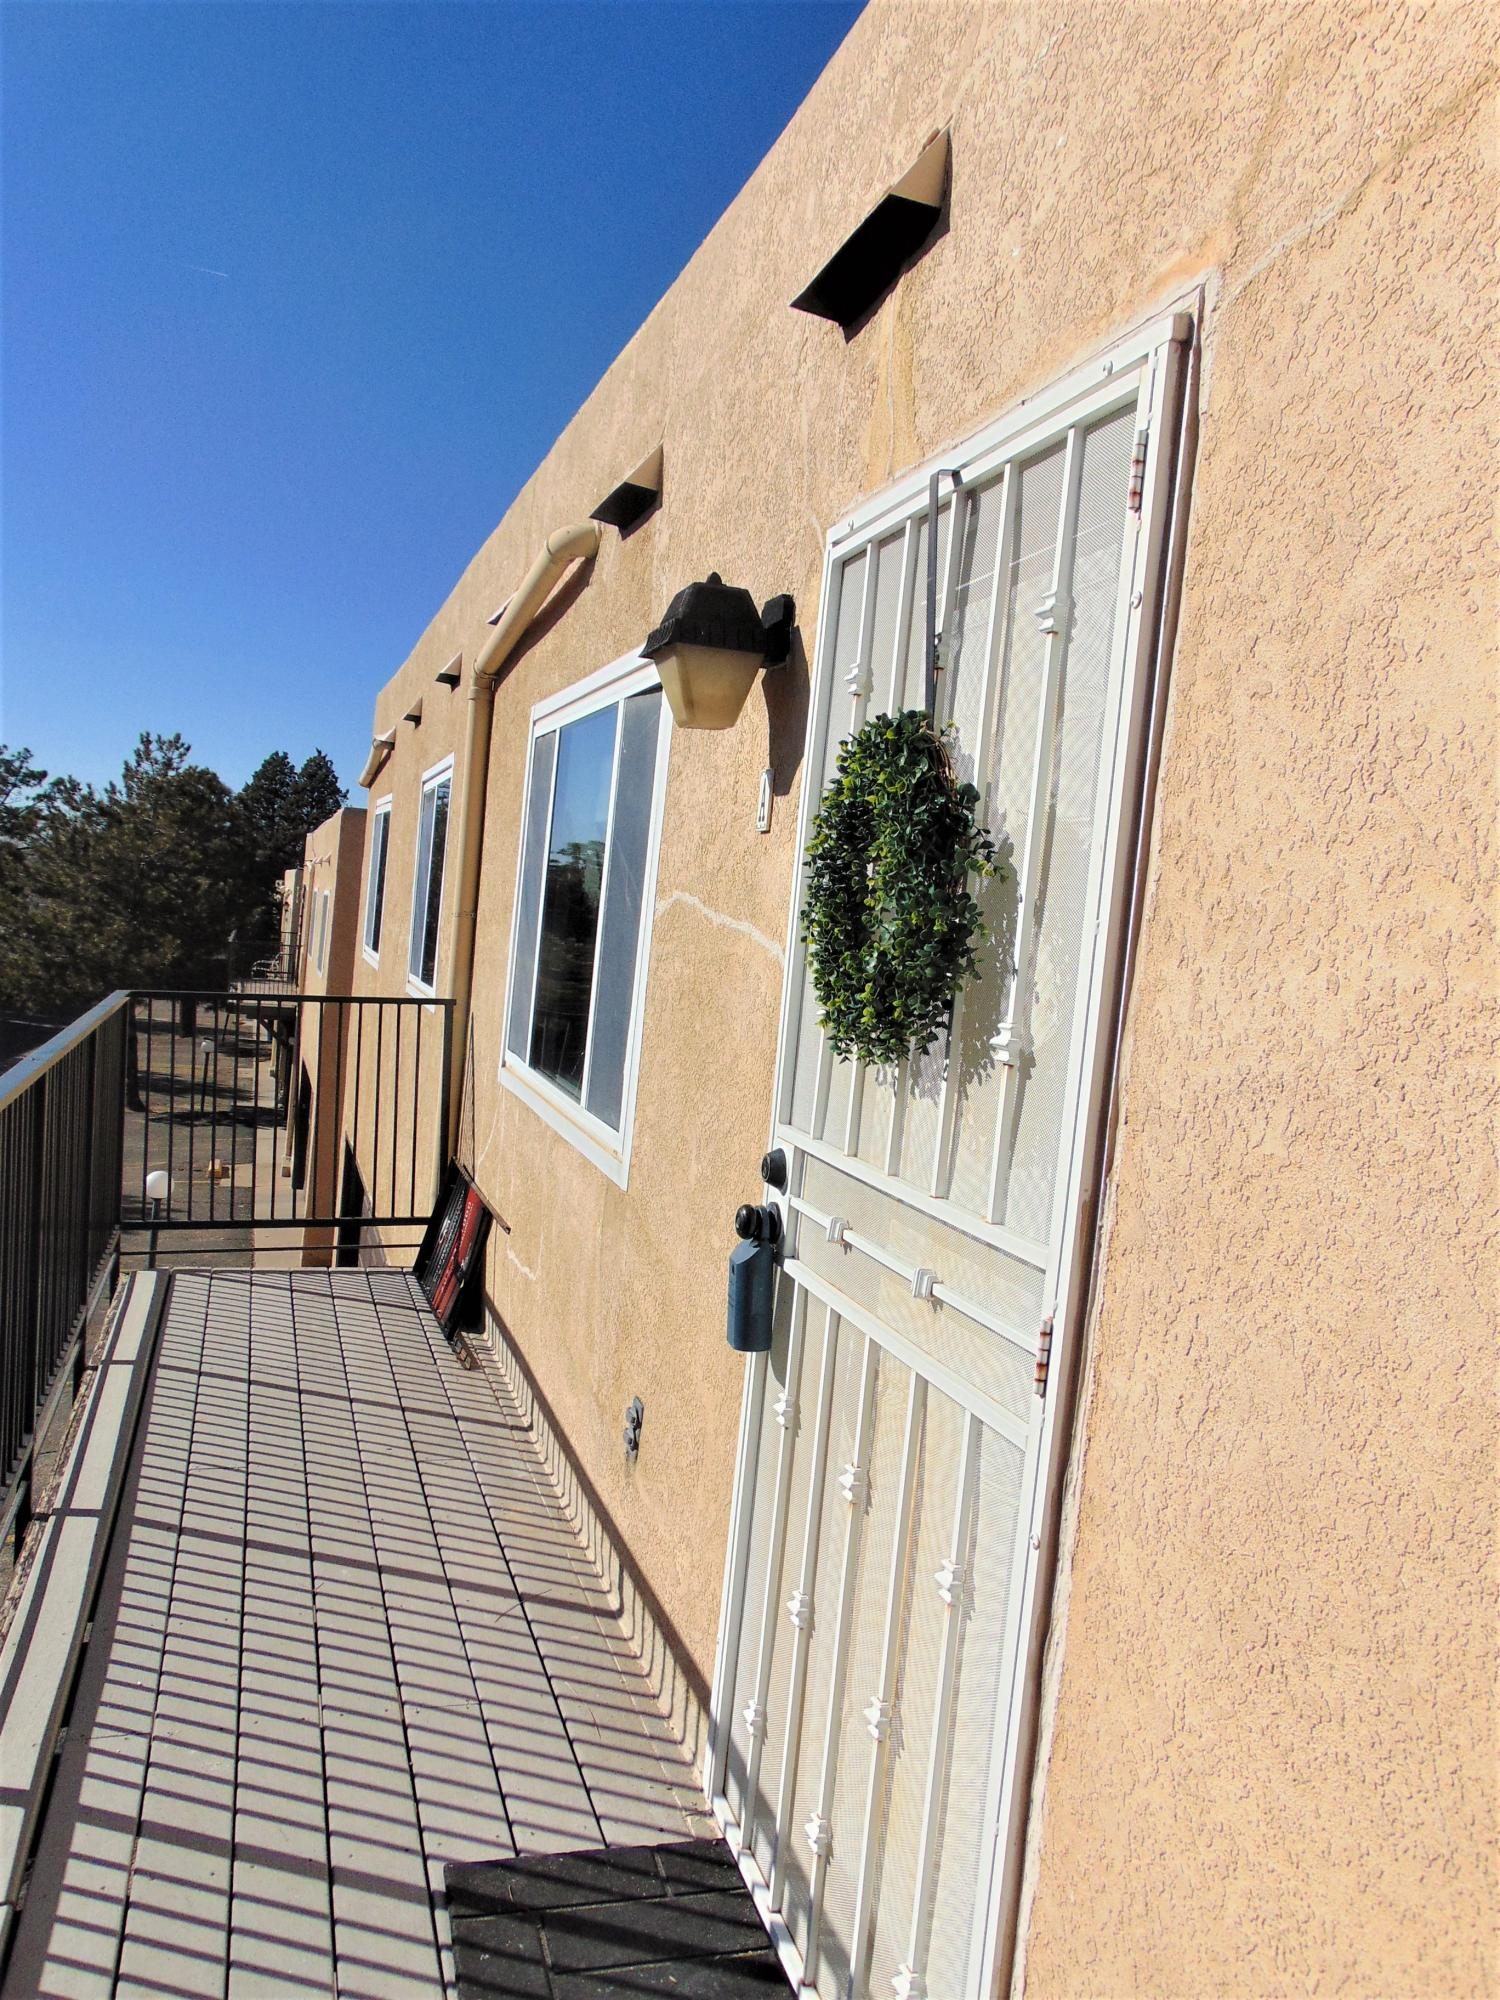 12007  Stilwell Dr Ne Apt A Drive, Albuquerque Northeast Heights, New Mexico